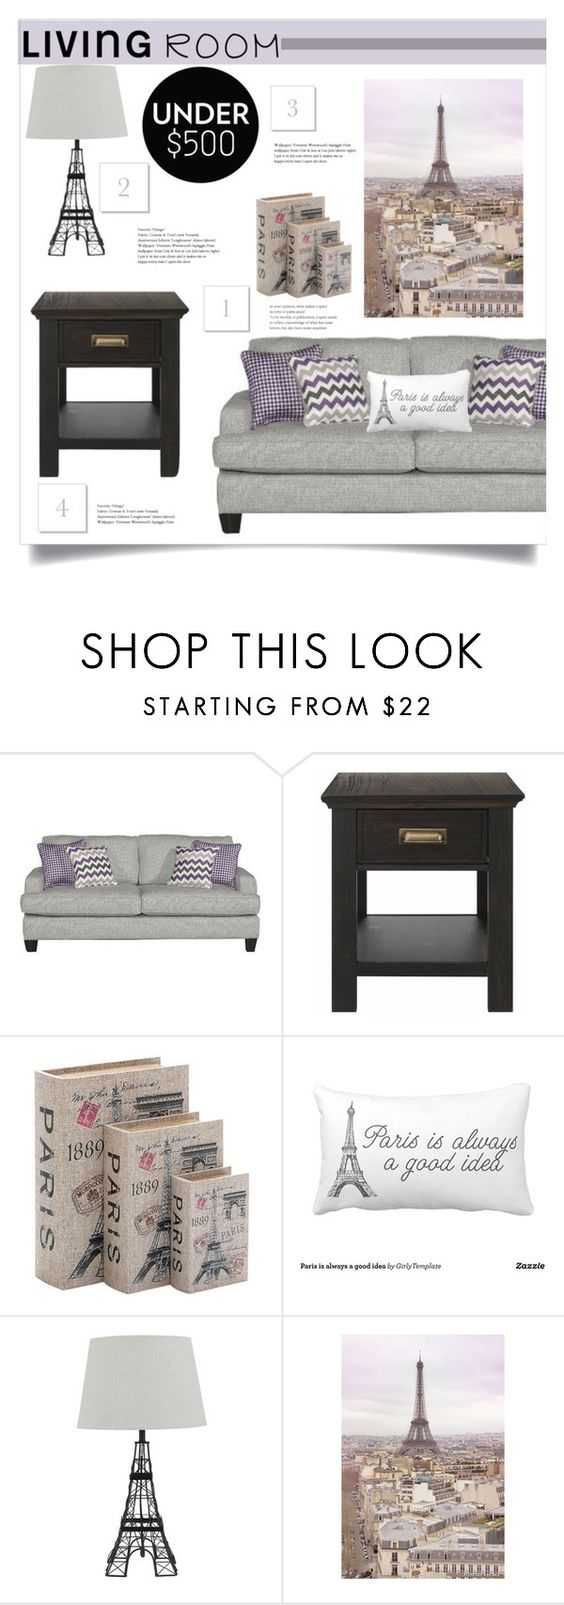 Threshold home decor shop for threshold home decor on polyvore -  Untitled By Kaymeans Liked On Polyvore Featuring Interior Interiors Interior Design Home Home Decor Interior Decorating Threshold Home Decorators